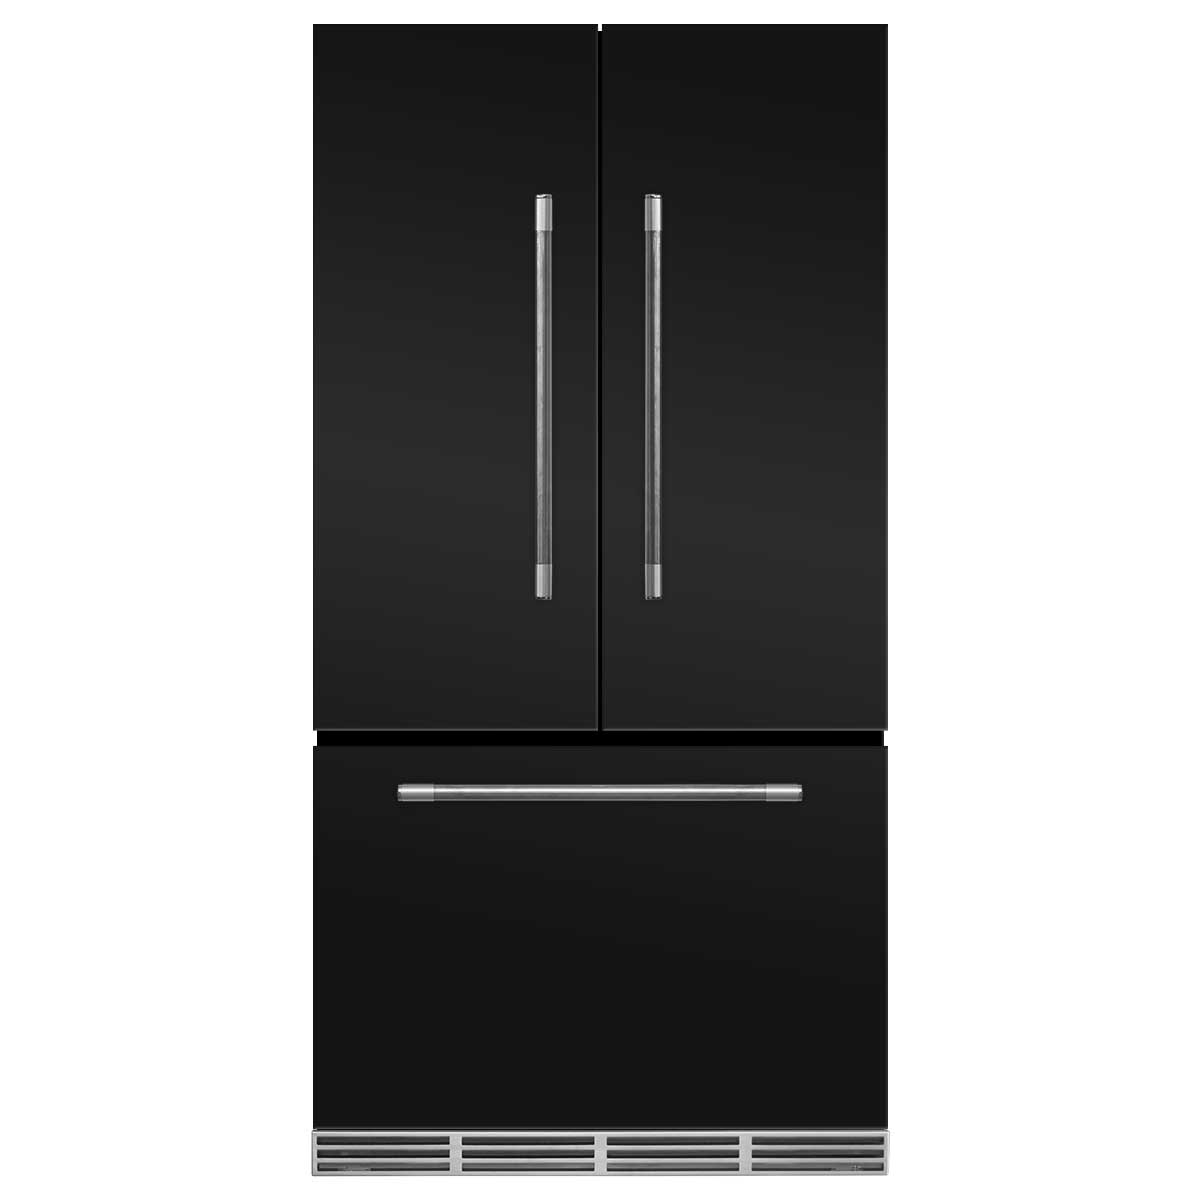 Marvel Mercury French Door Counter-Depth Refrigerator